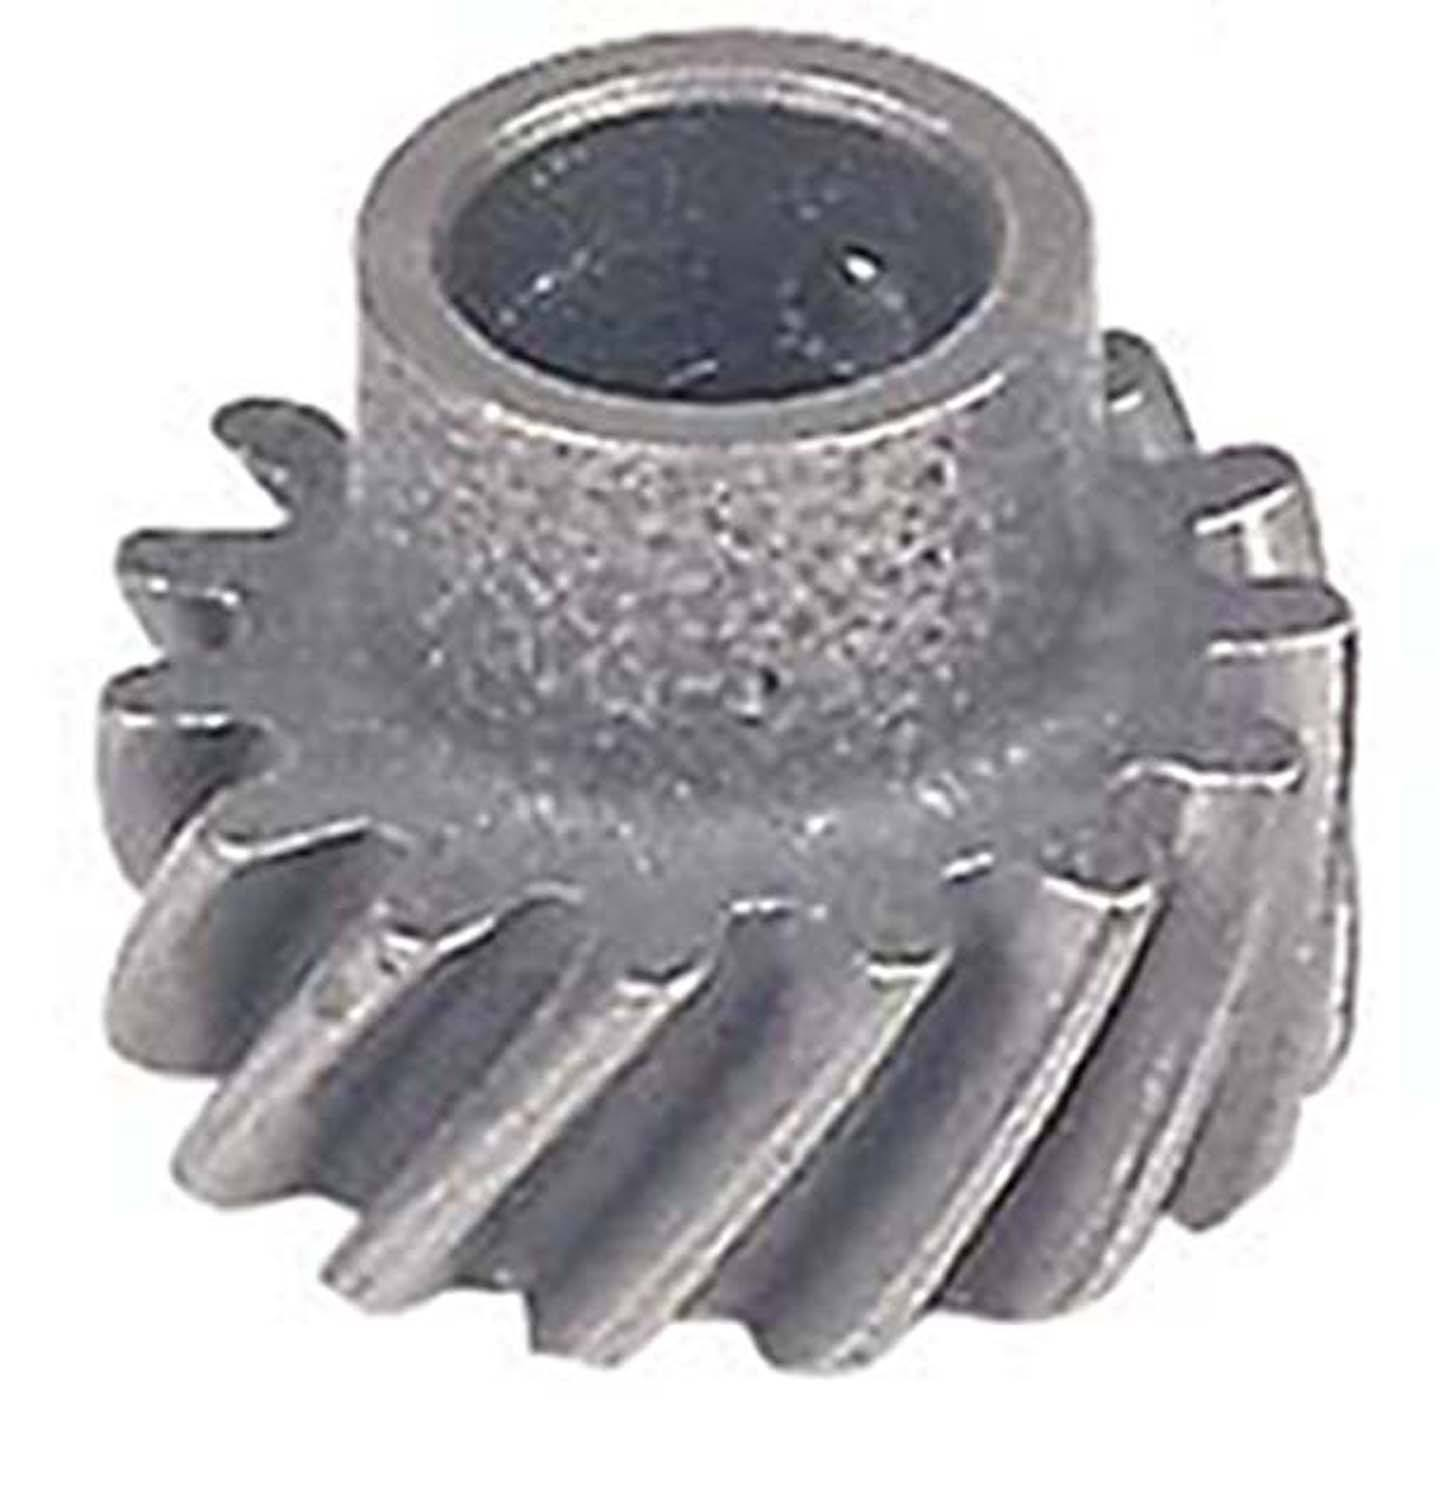 MSD Ignition 85813 Distributor Gear, 0.531 in Shaft, Steel, Big Block Ford / Cleveland / Modified, Each